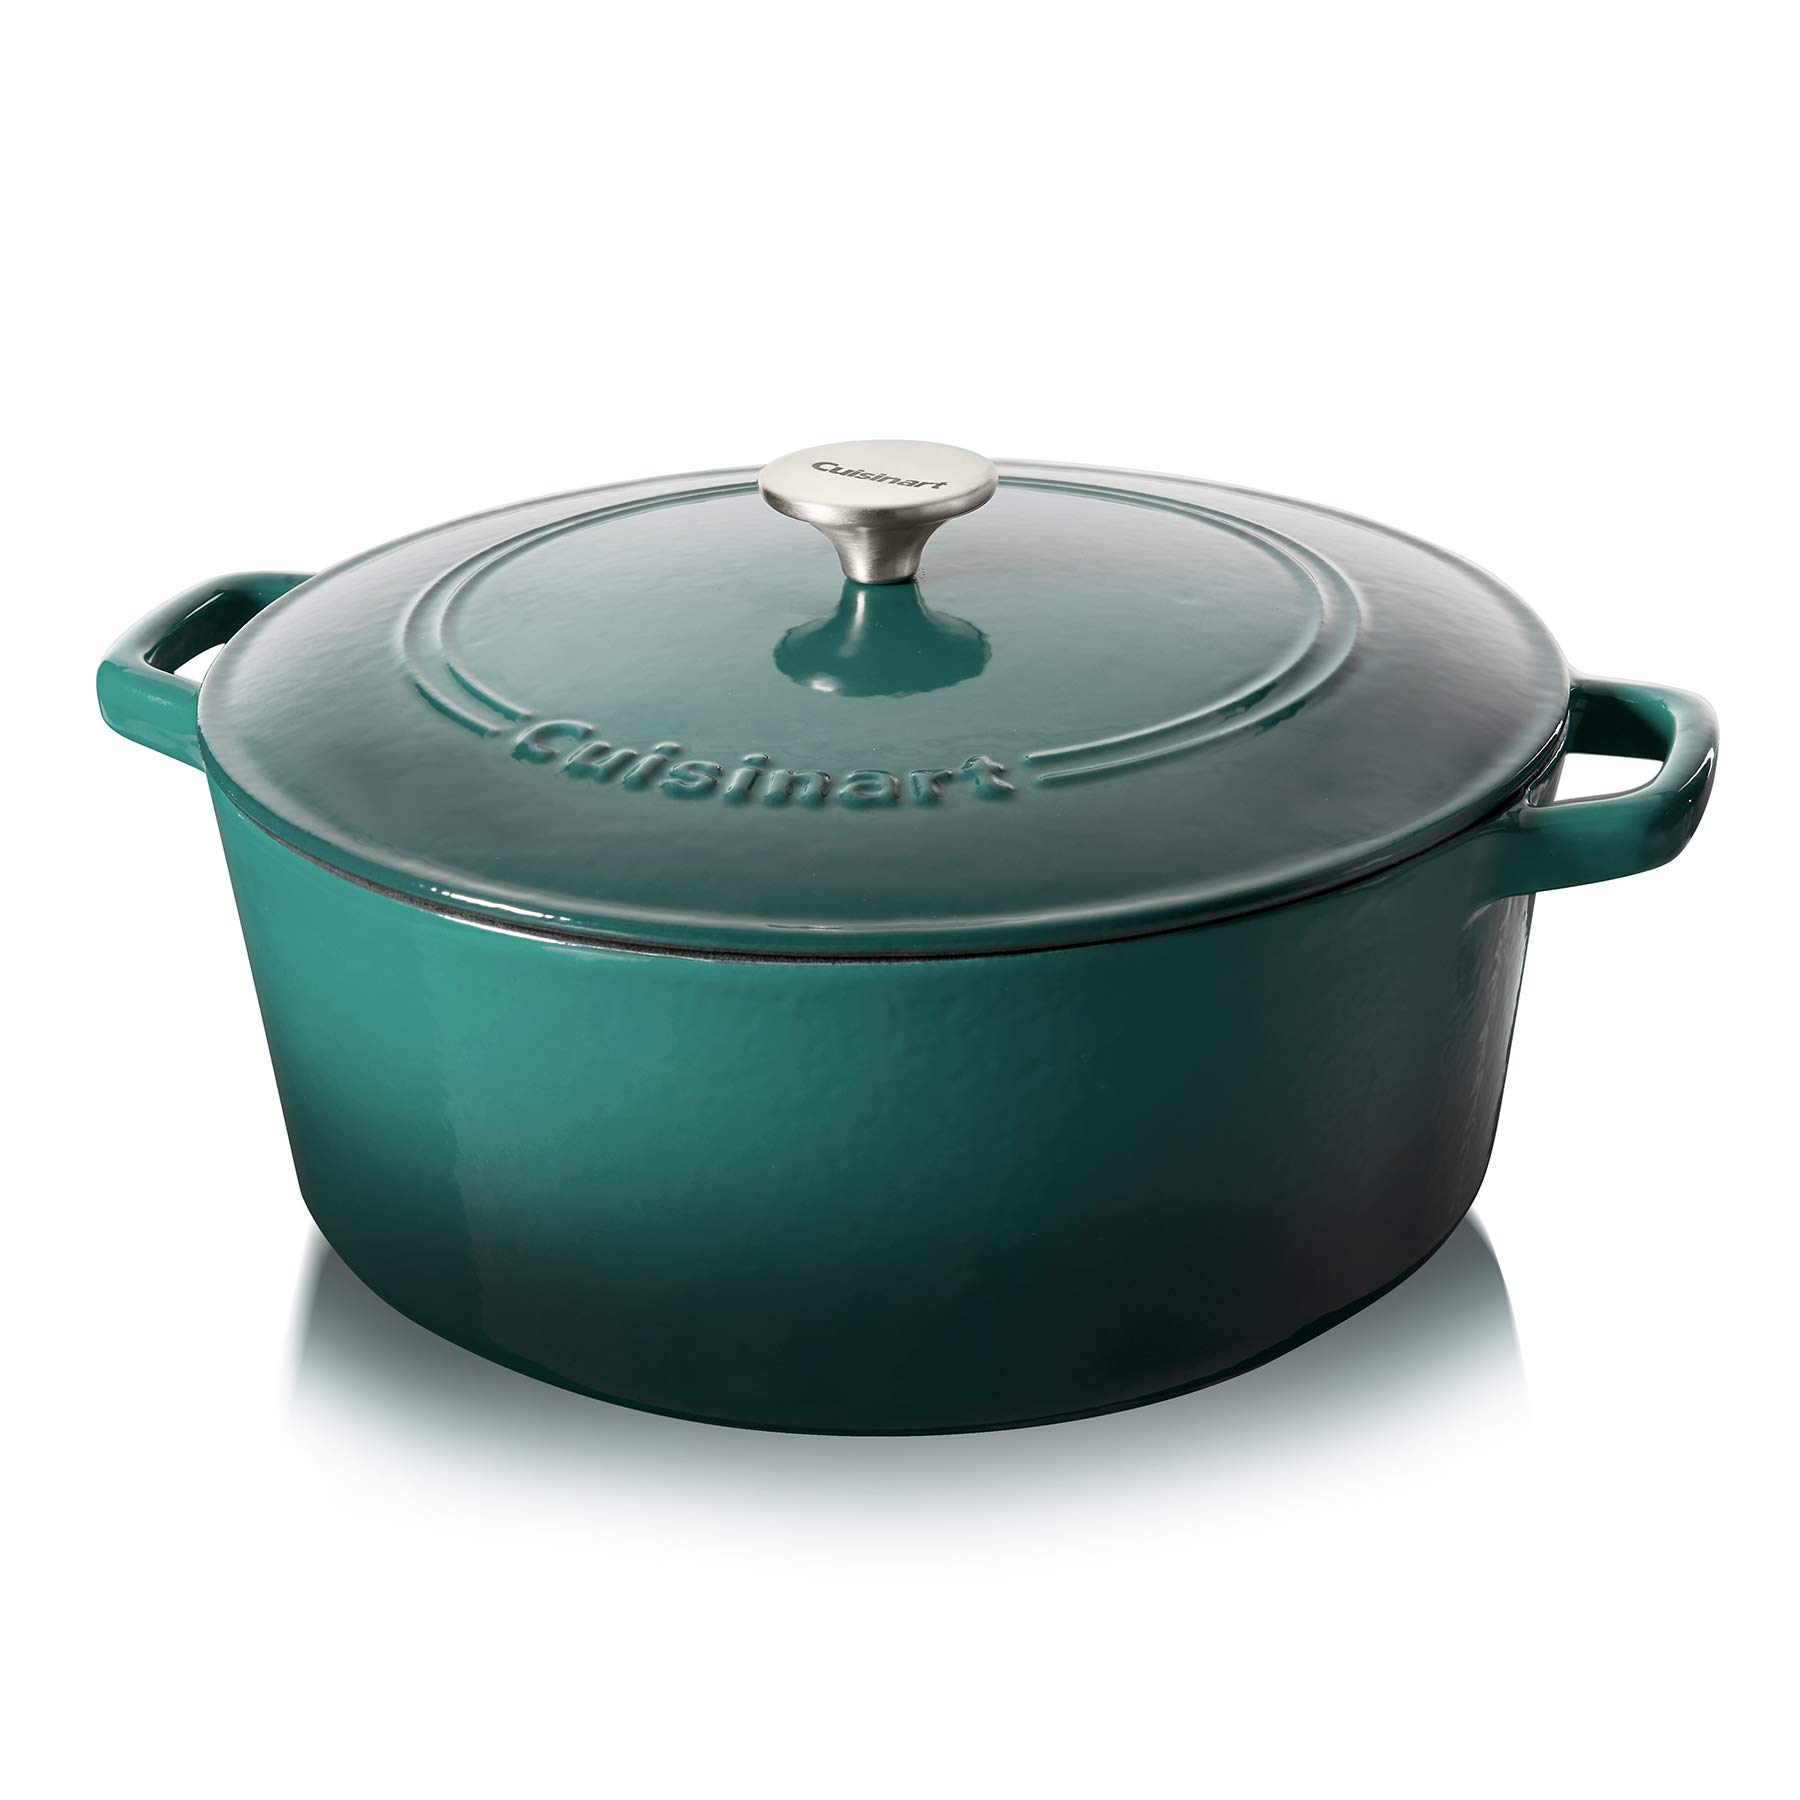 Cuisinart Cast Iron 7-Quart Casserole, Teal Gradient